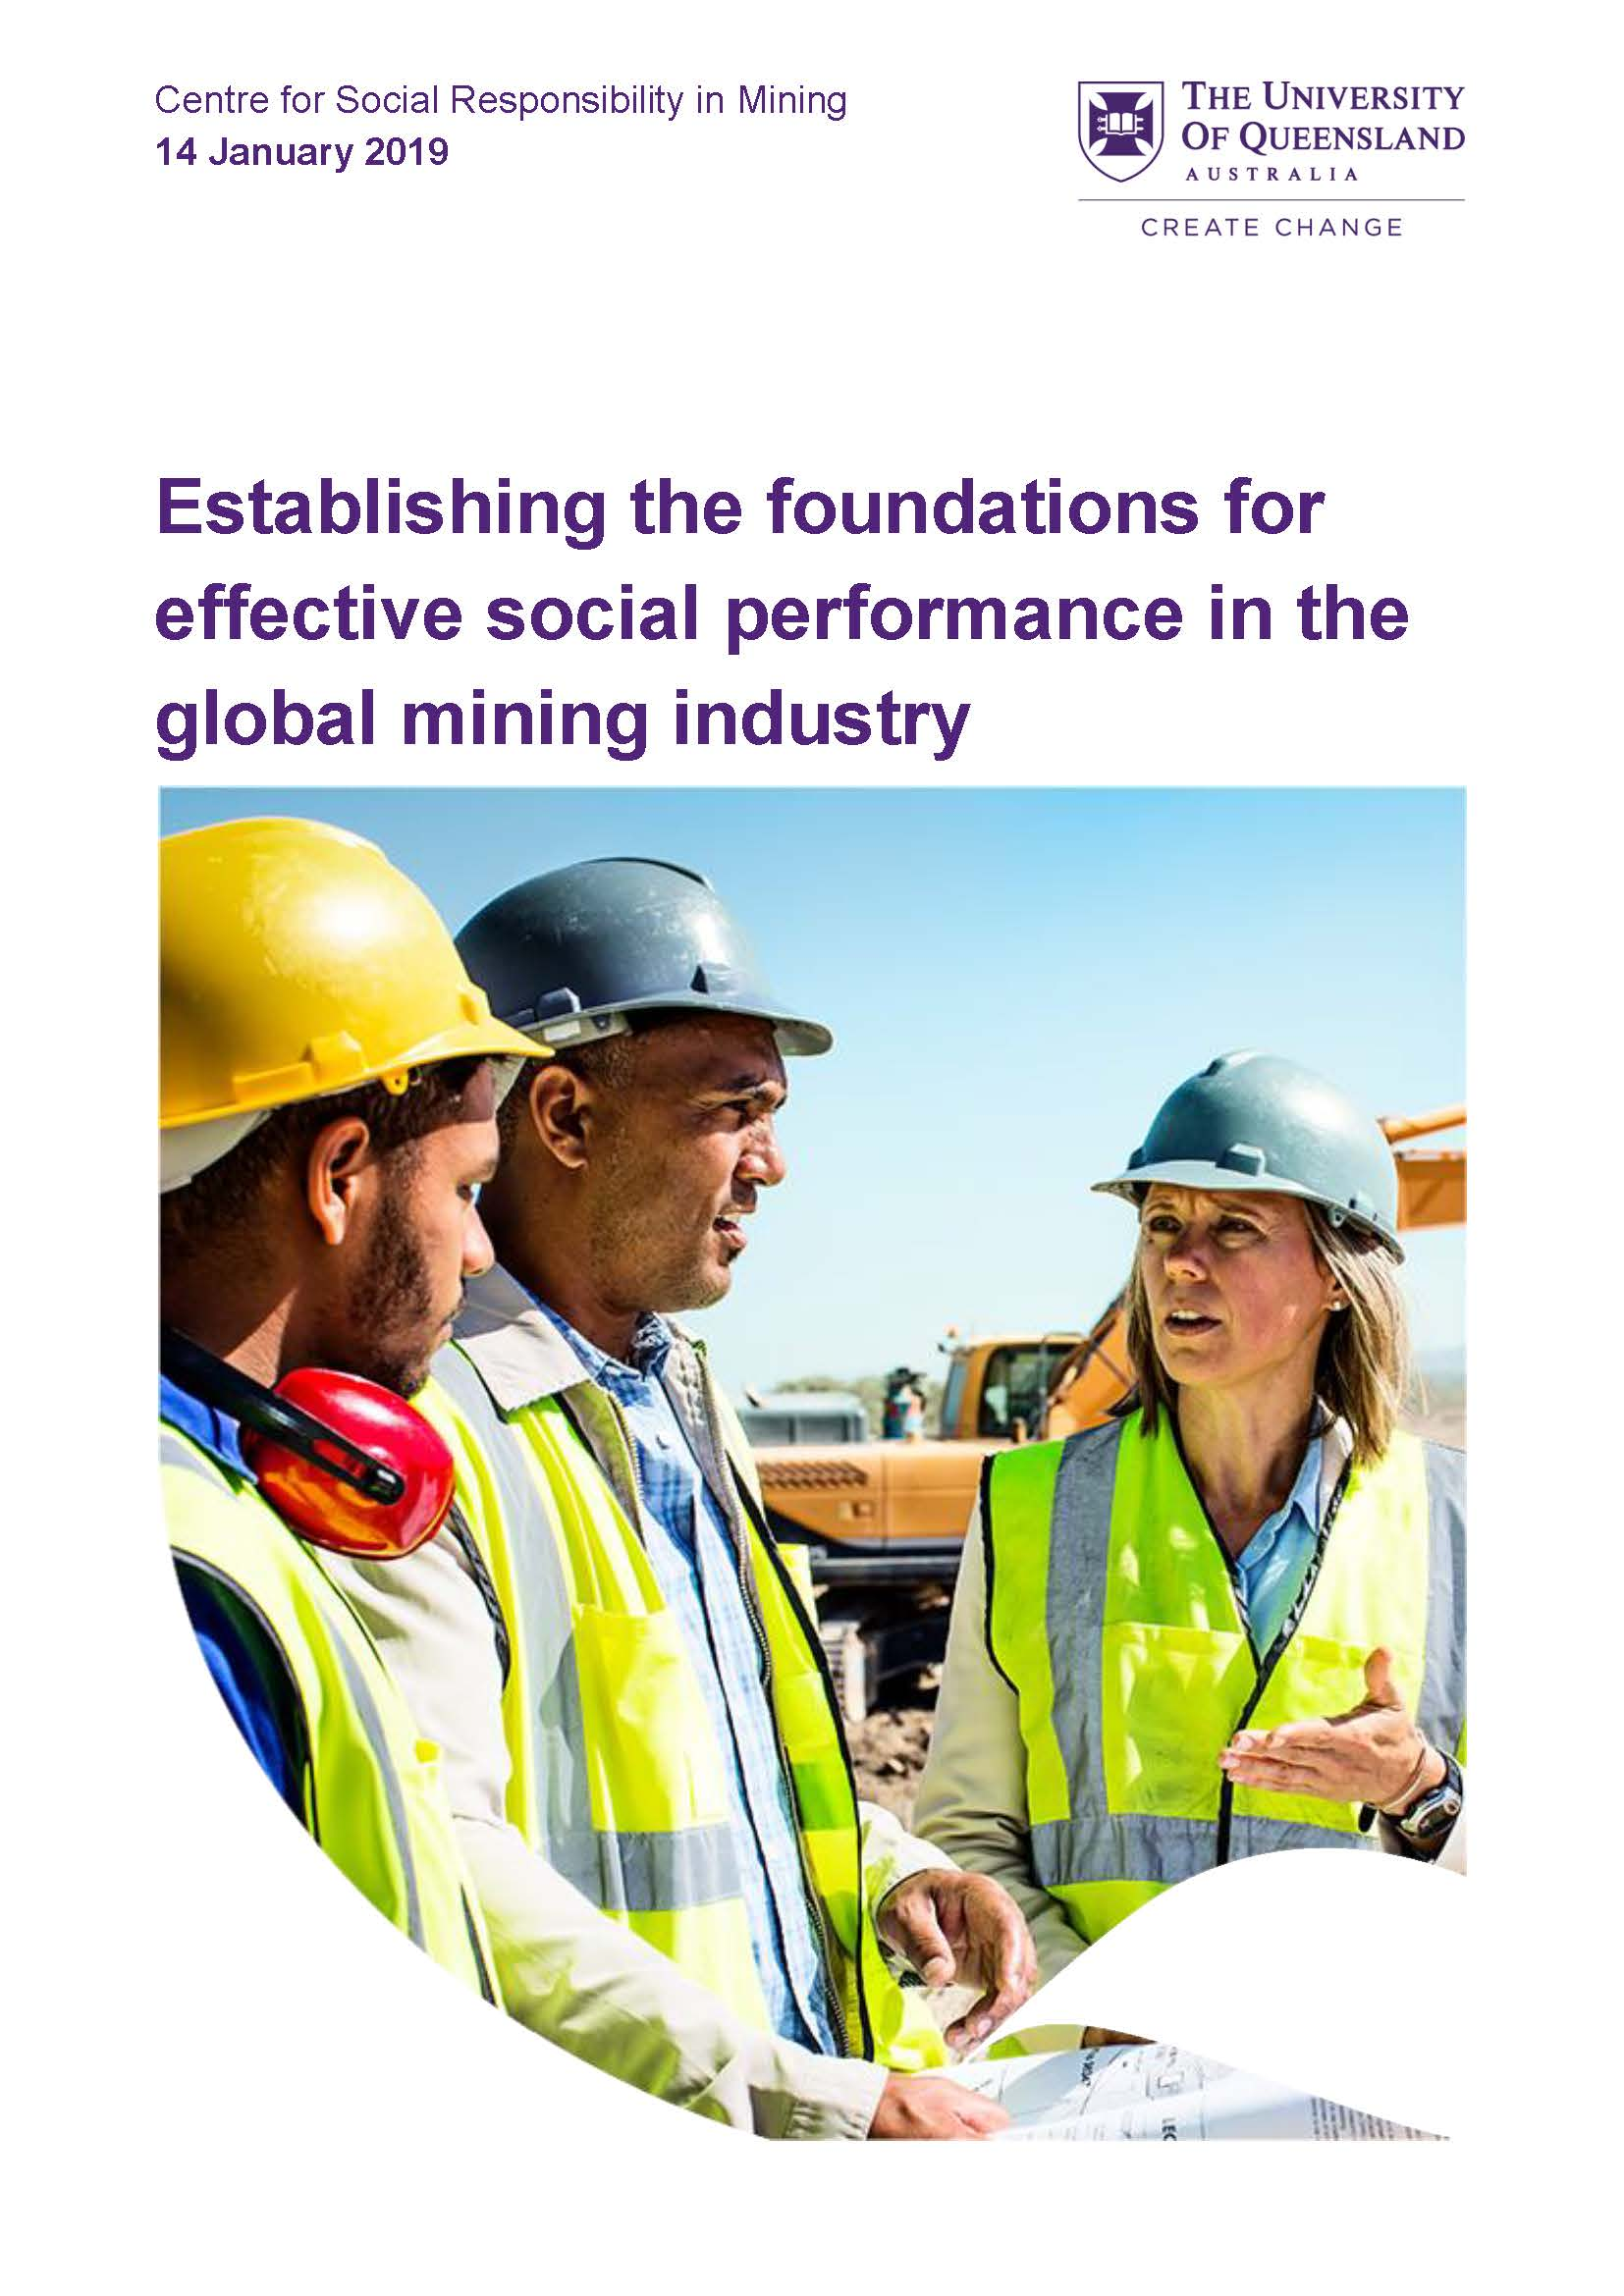 Establishing the foundations for effective social performance in the global mining industry